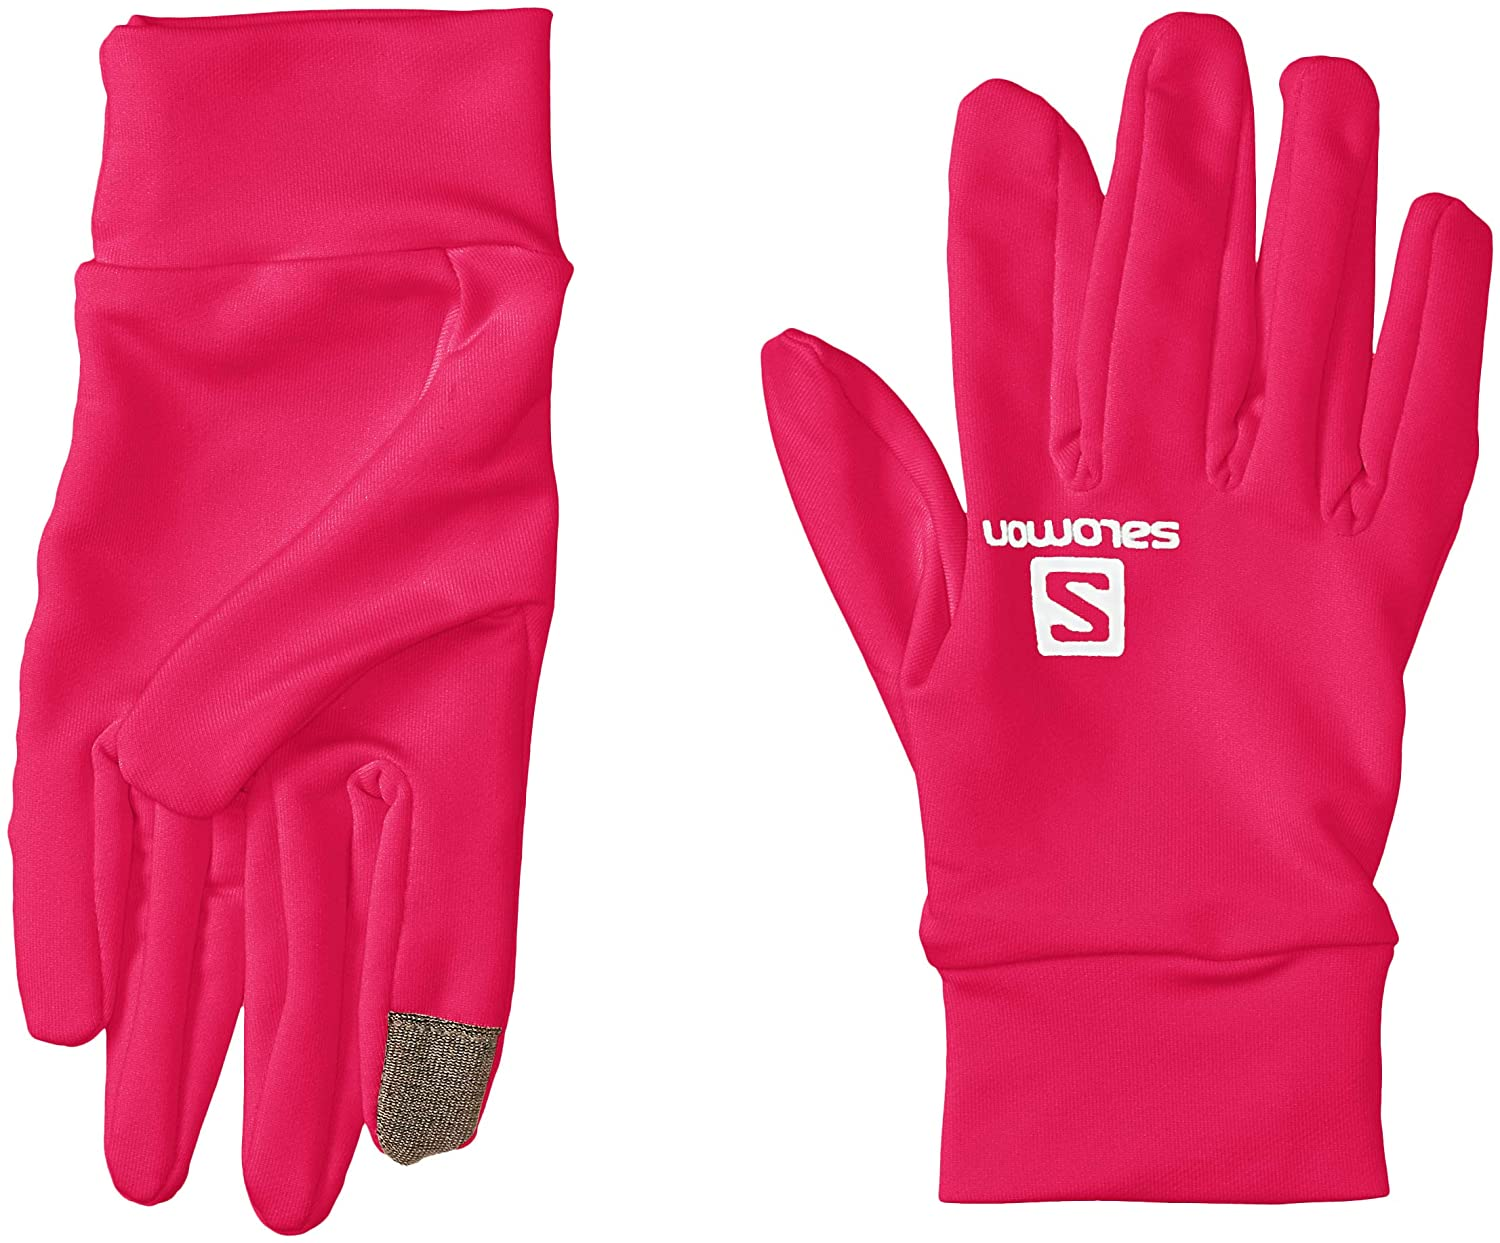 Salomon Gloves Agile Warm Glove Unisex L40420600